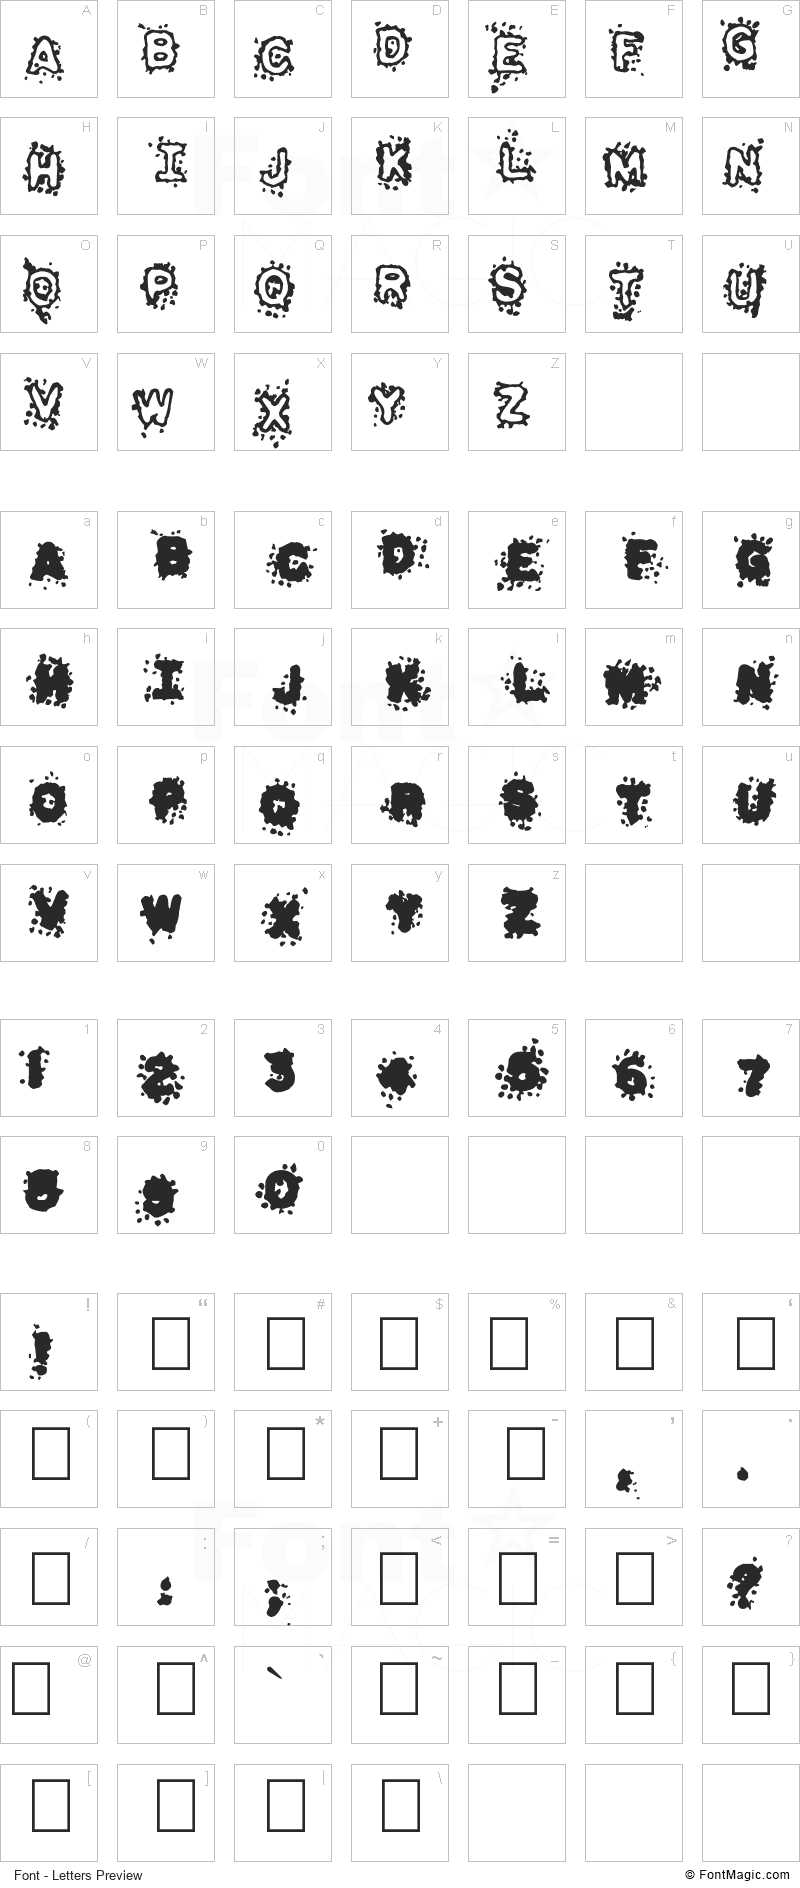 Pulpatone Font - All Latters Preview Chart